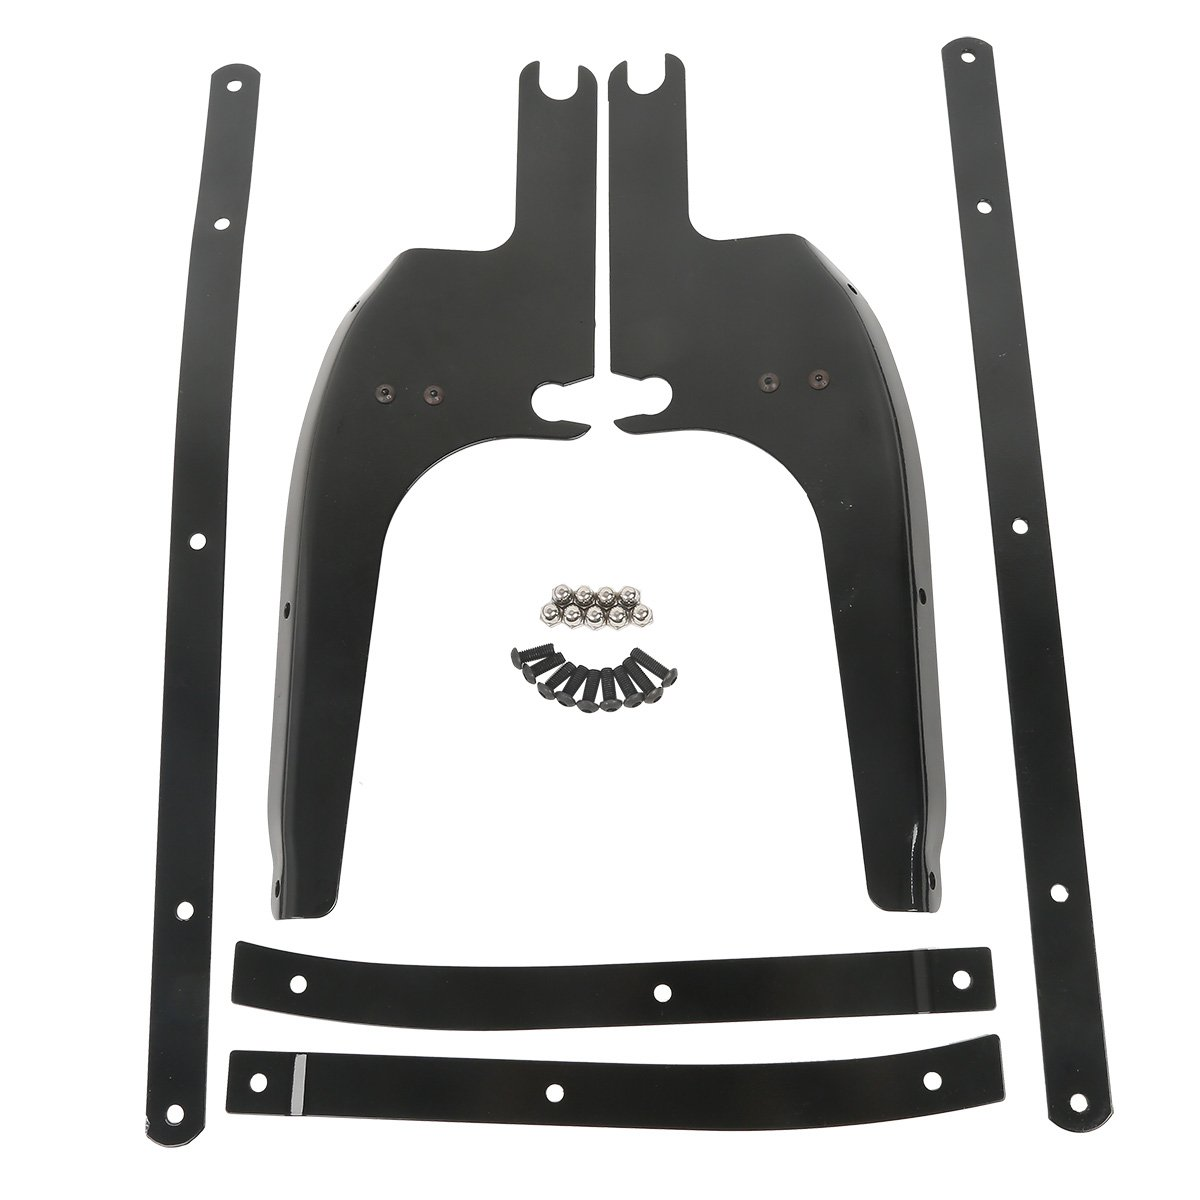 XFMT Wind Shield Screen Bracket Mount Kit Compatible with Harley Touring Road King FLHR 1994-2019 2018